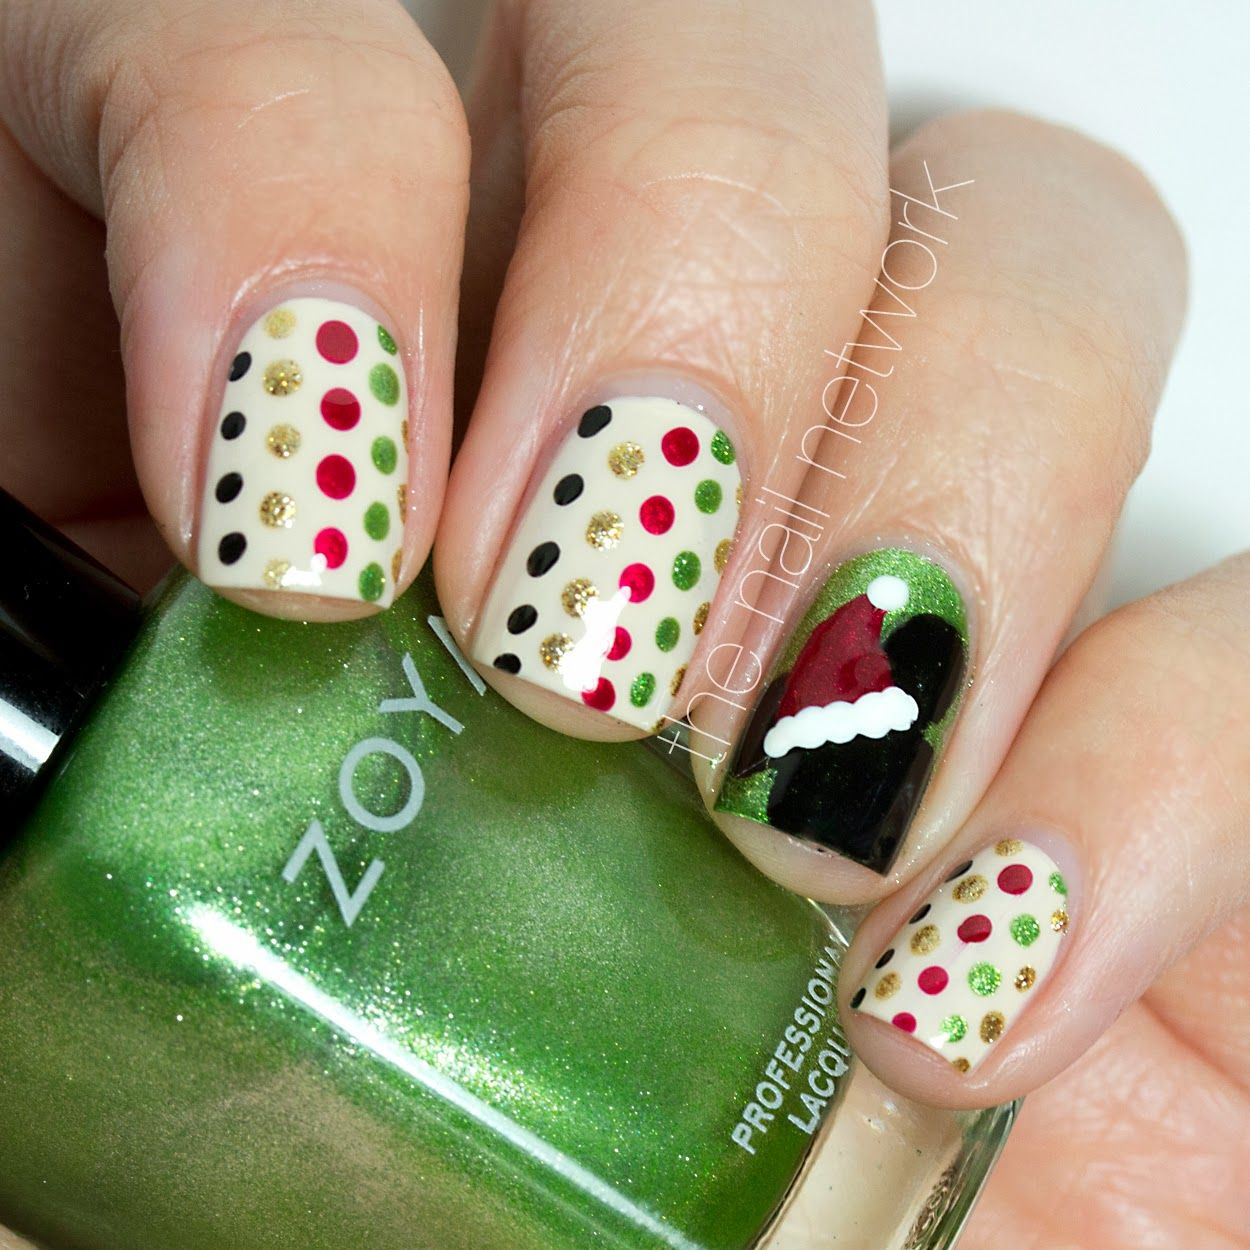 Pictures Of Christmas Designs On Nails